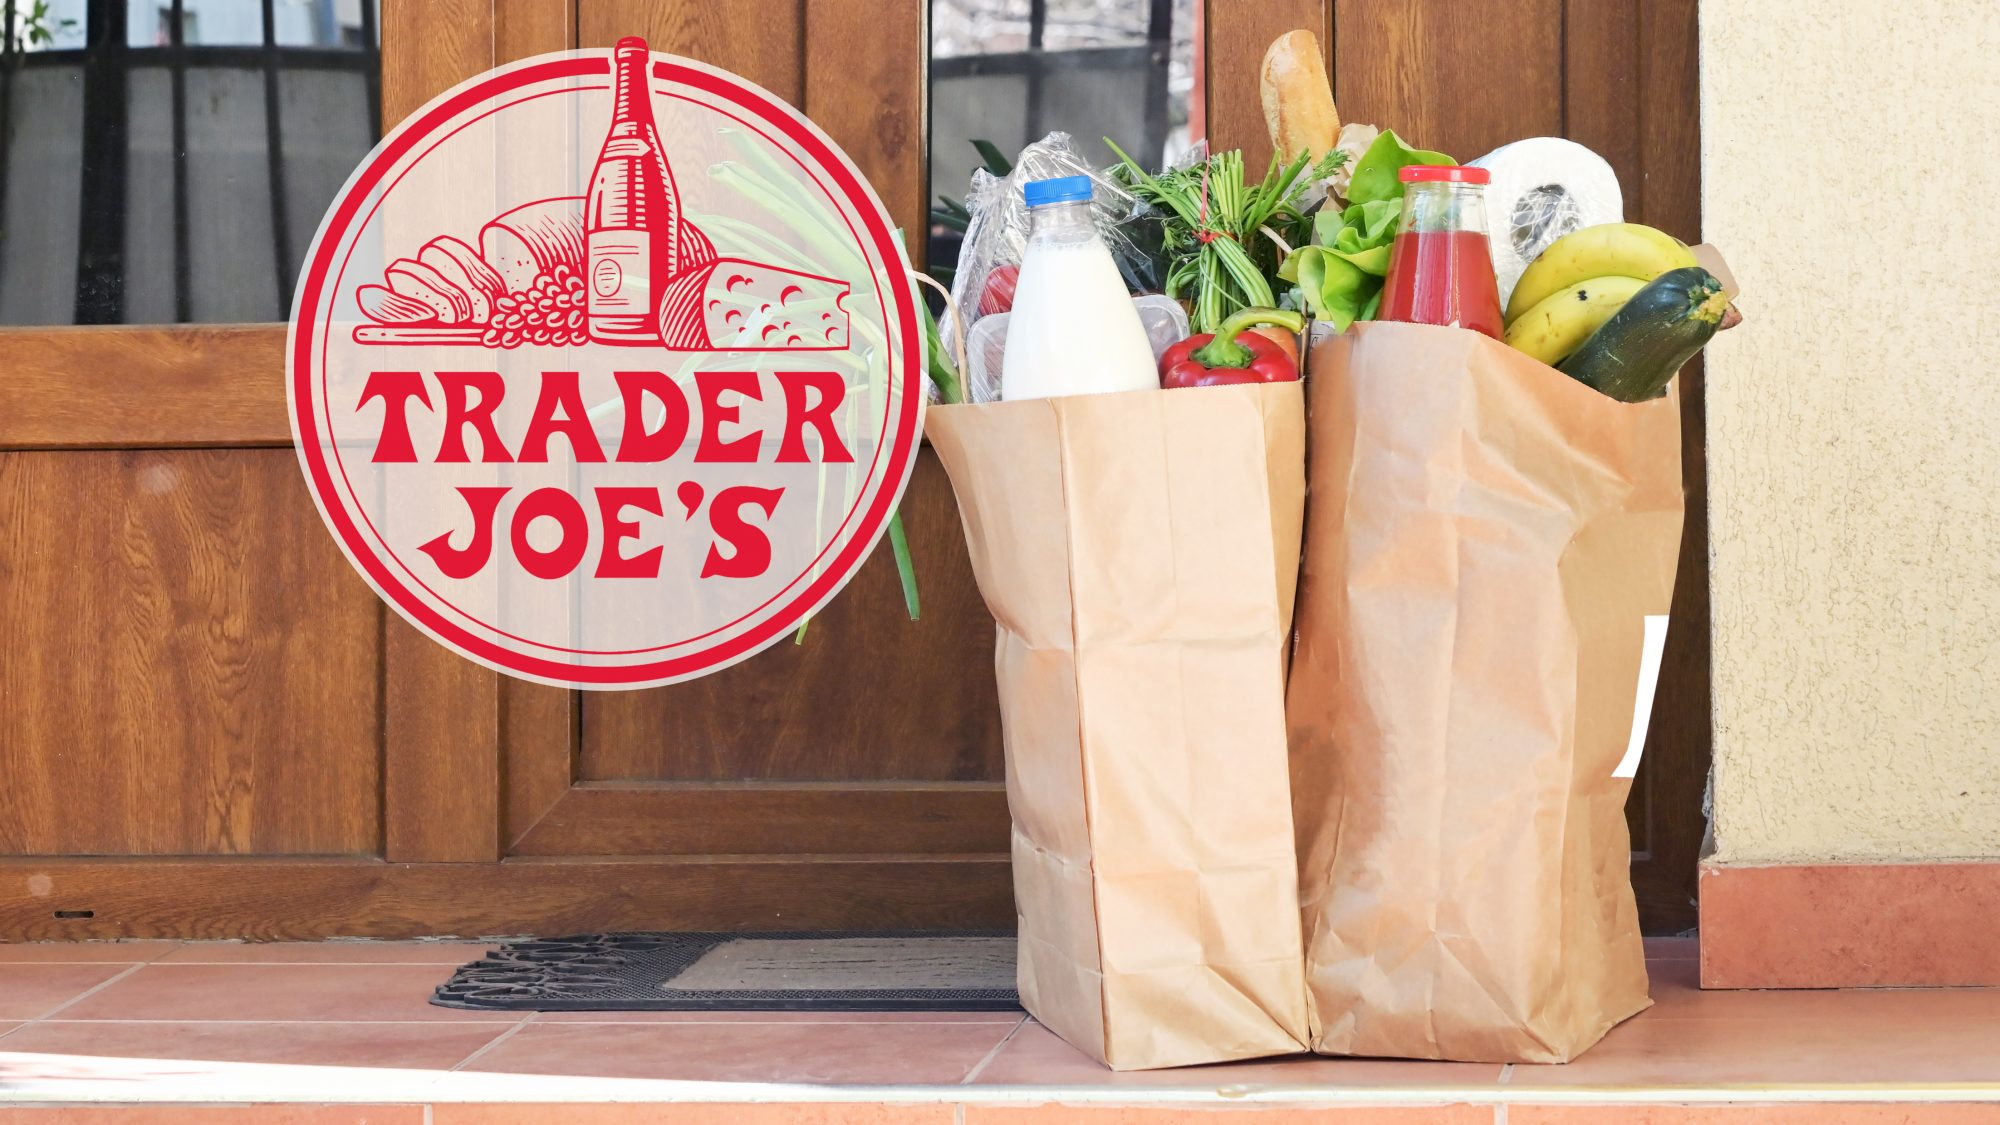 trader joe's shopping bags filled with groceries at front door